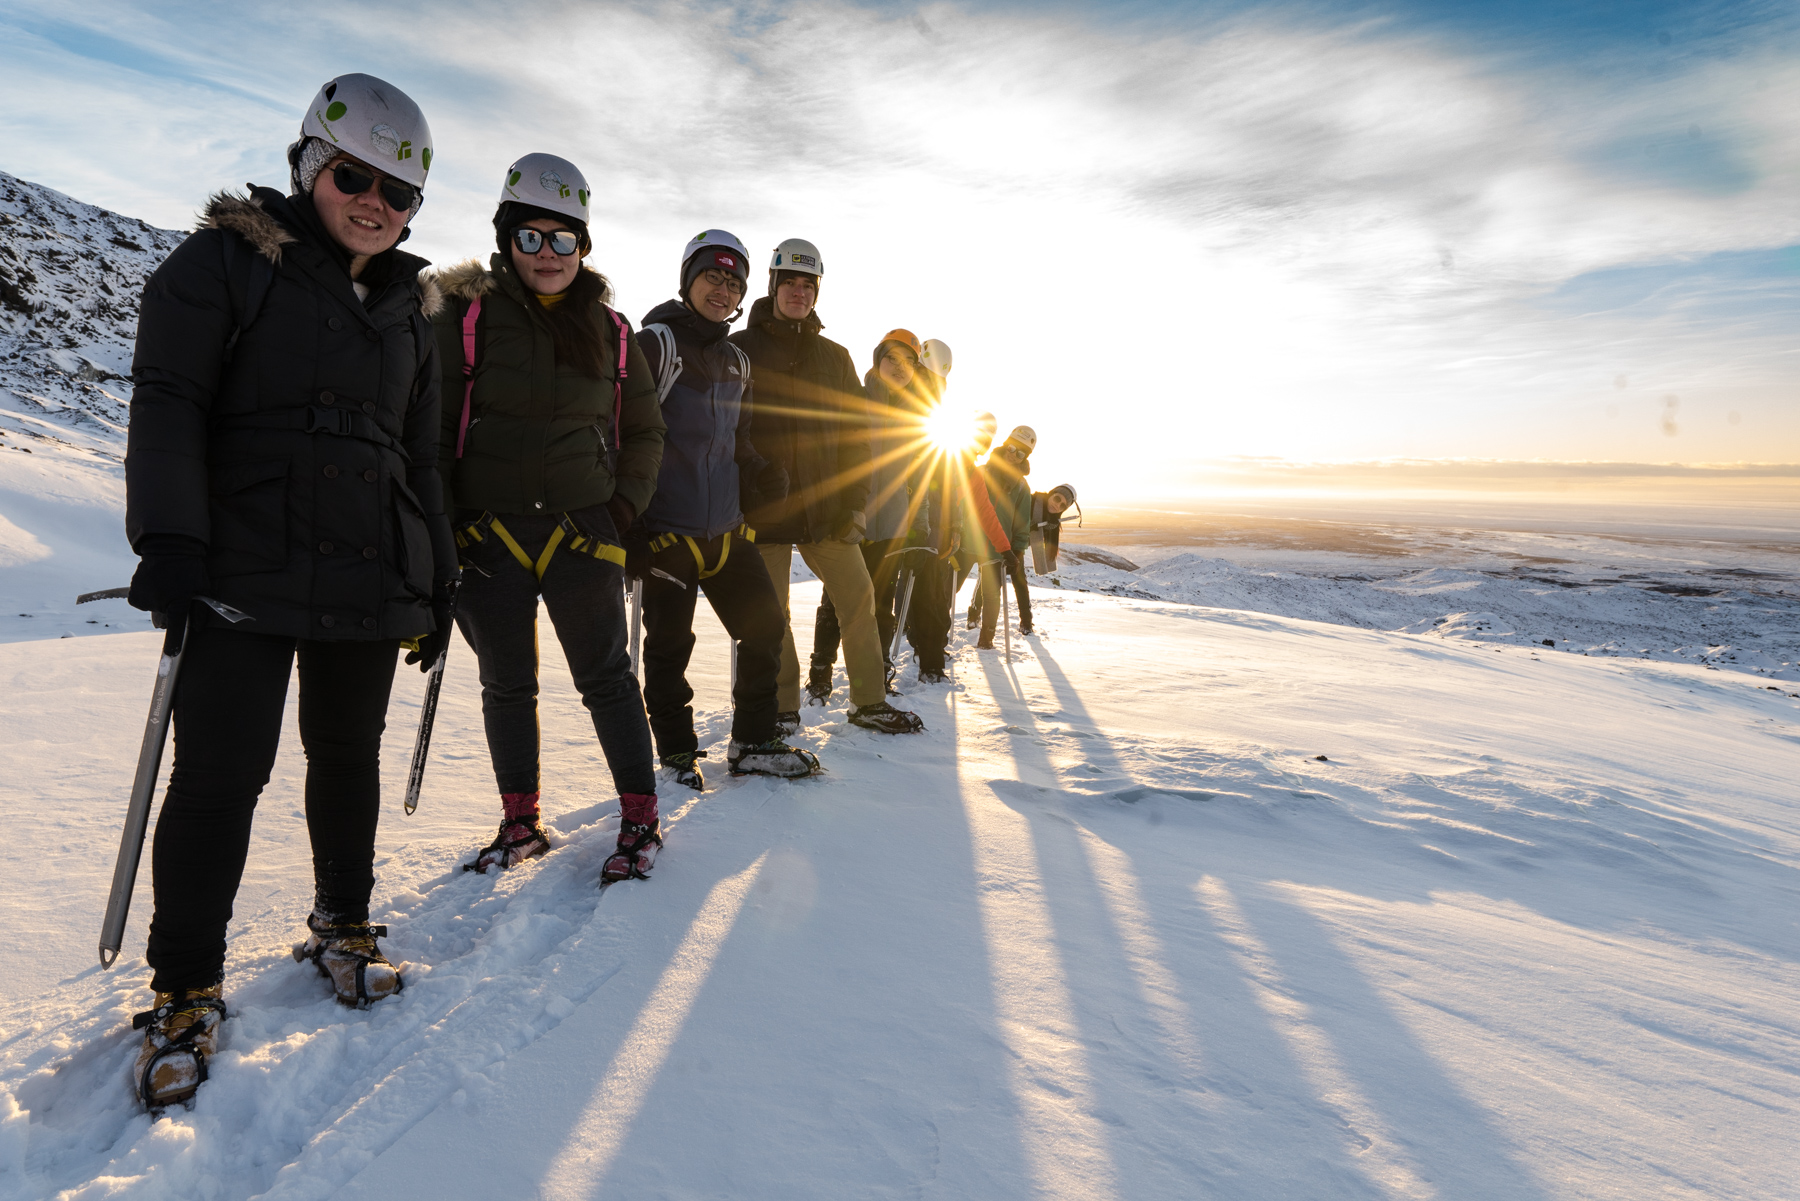 A group of people geared up for a glacier hike in Iceland